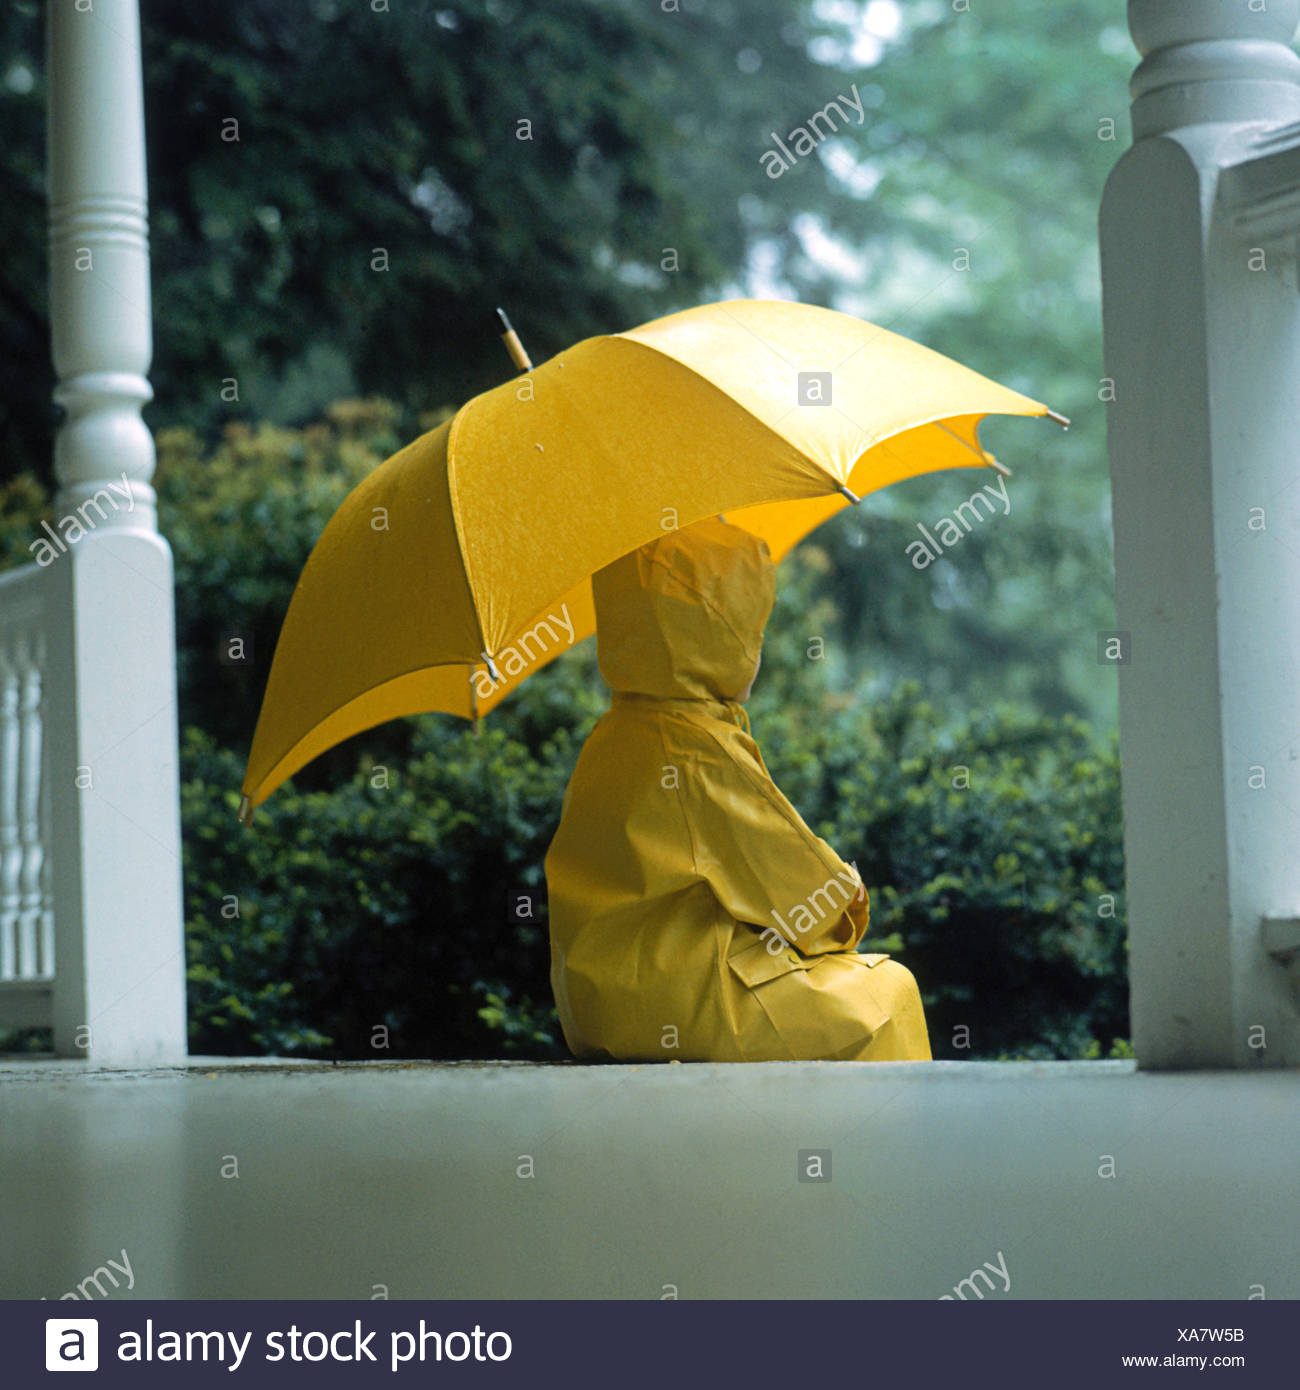 a young child wearing a yellow rain coat and rain boots standing in